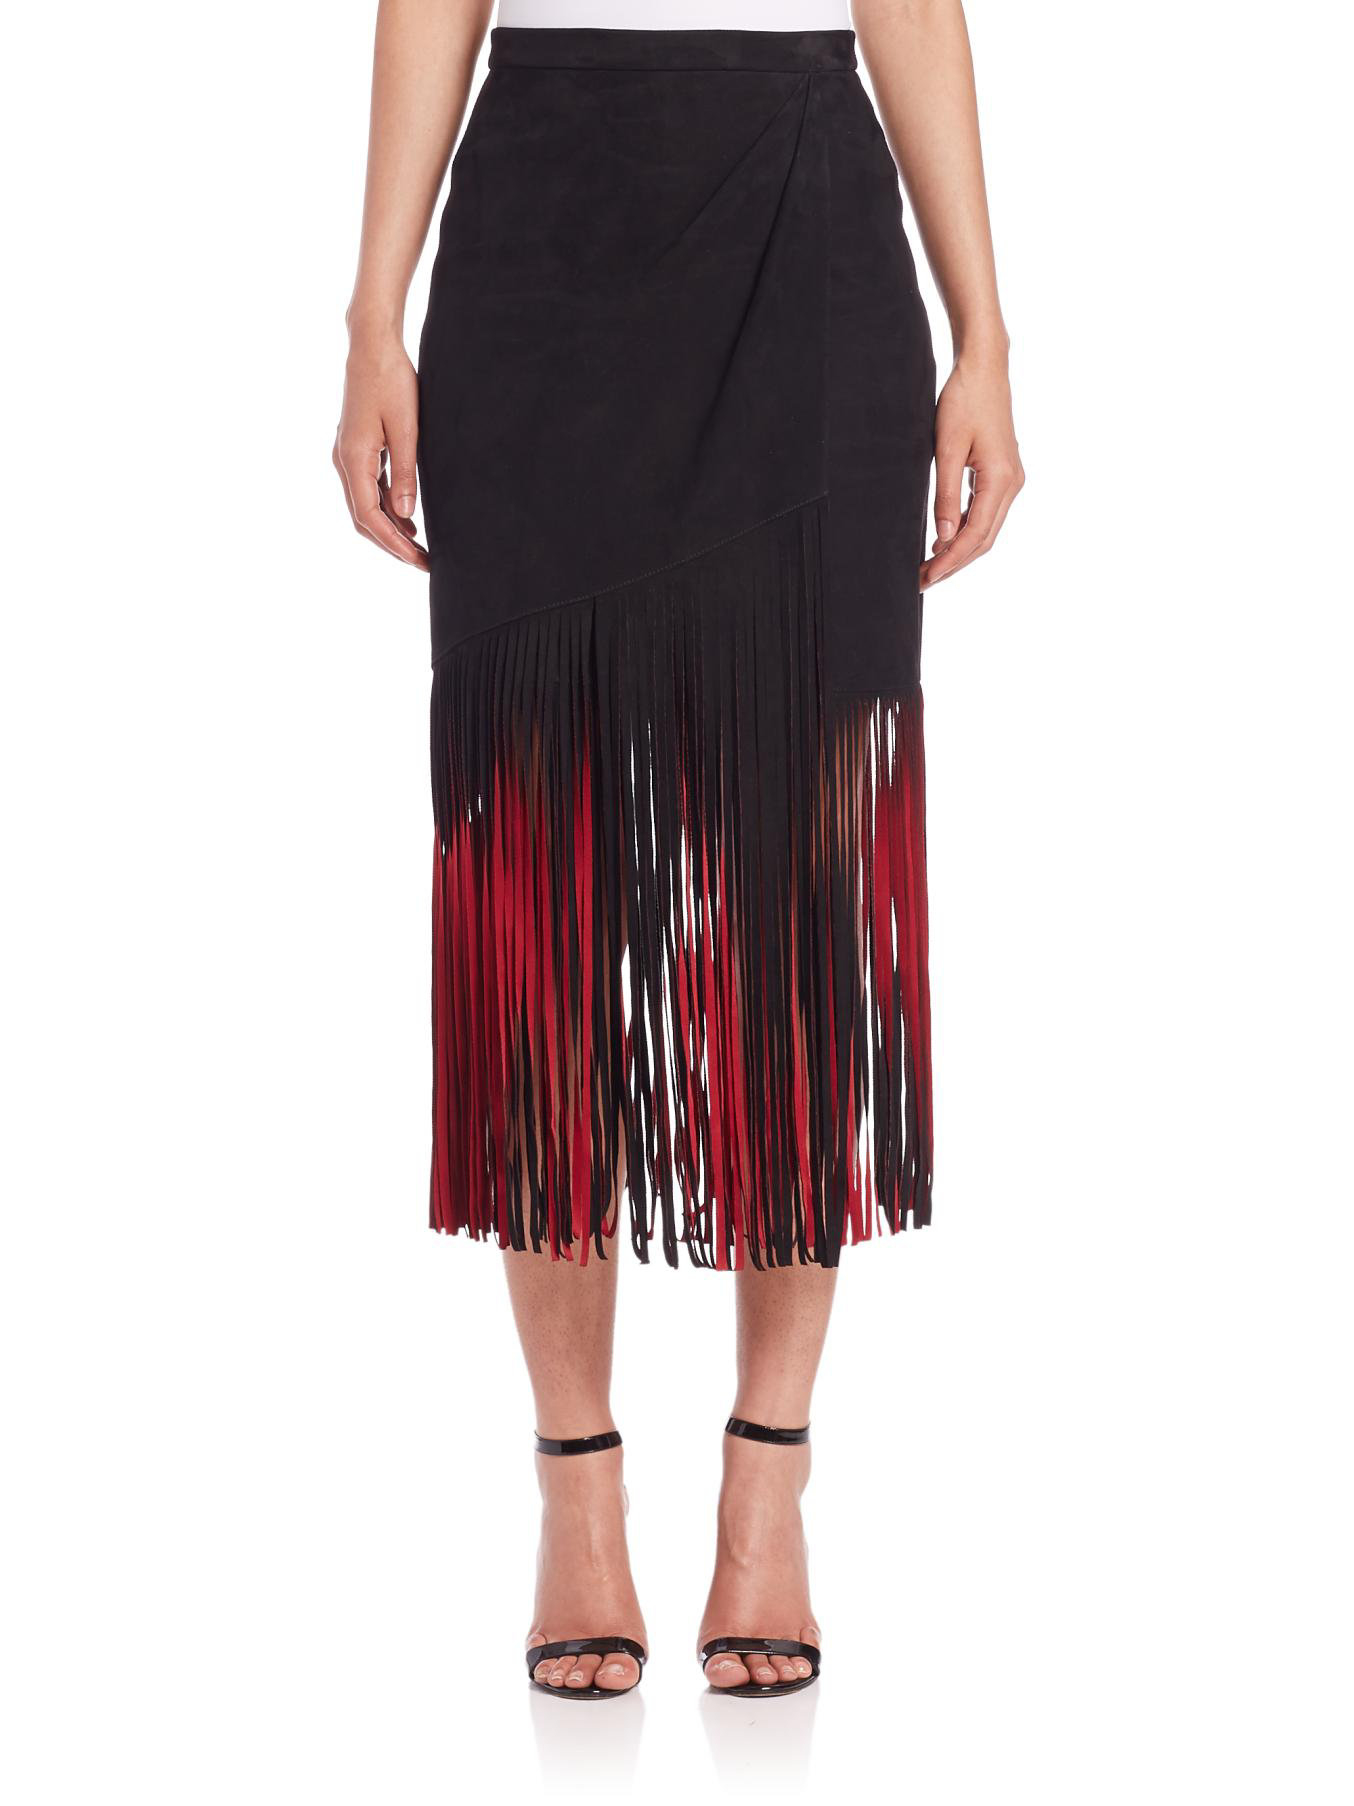 Goat leather work gloves - Tamara Mellon Signature Suede Fringe Skirt In Red Lyst